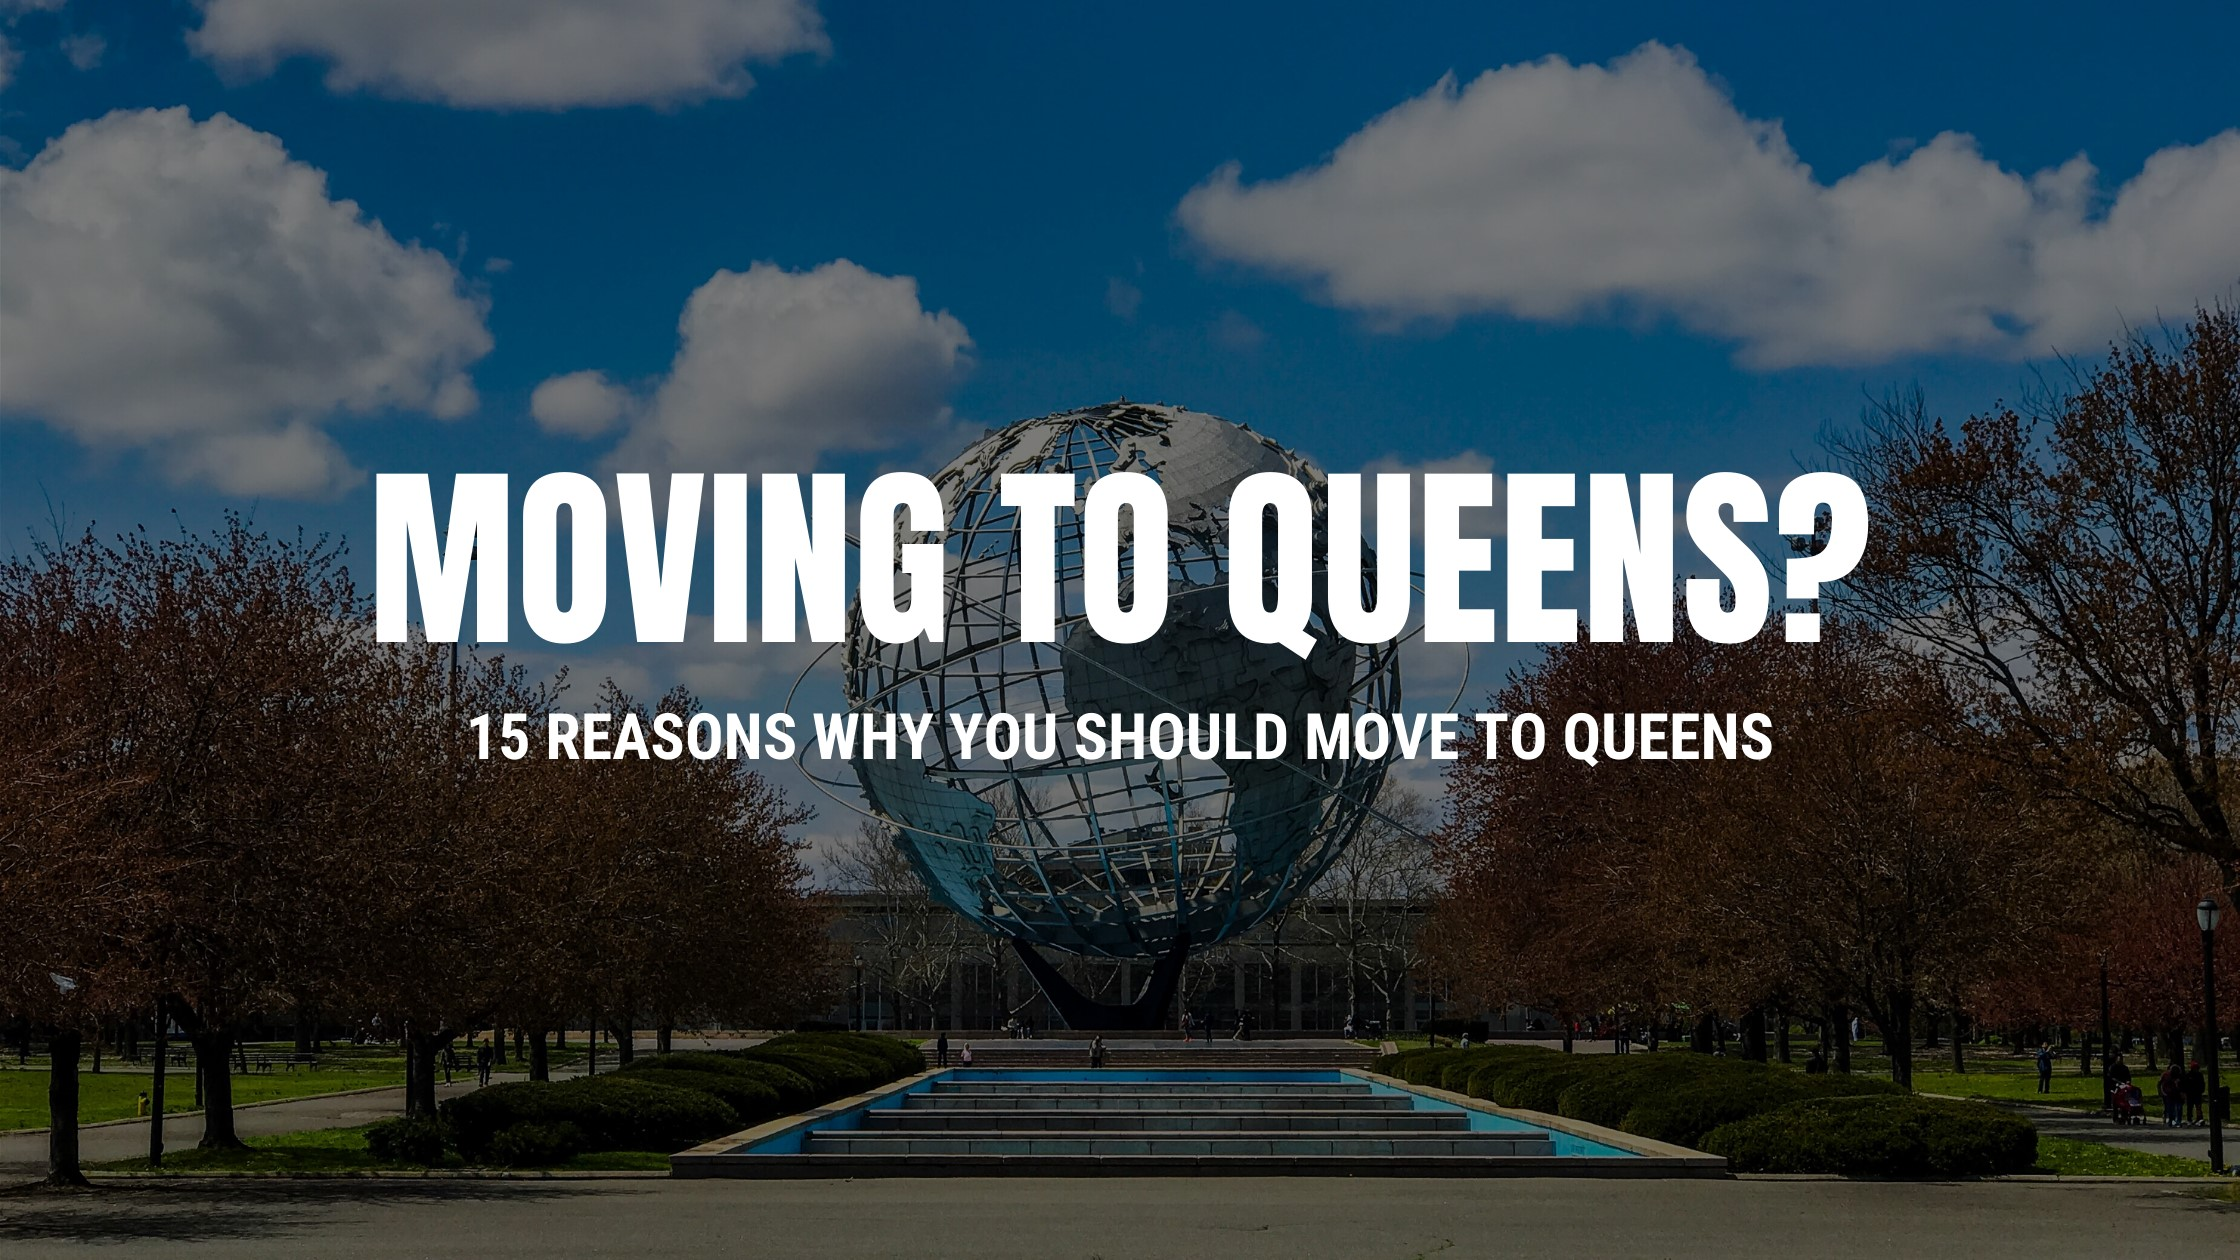 Image Result for Moving to Queens? 15 Reasons Why You Should Move to Queens